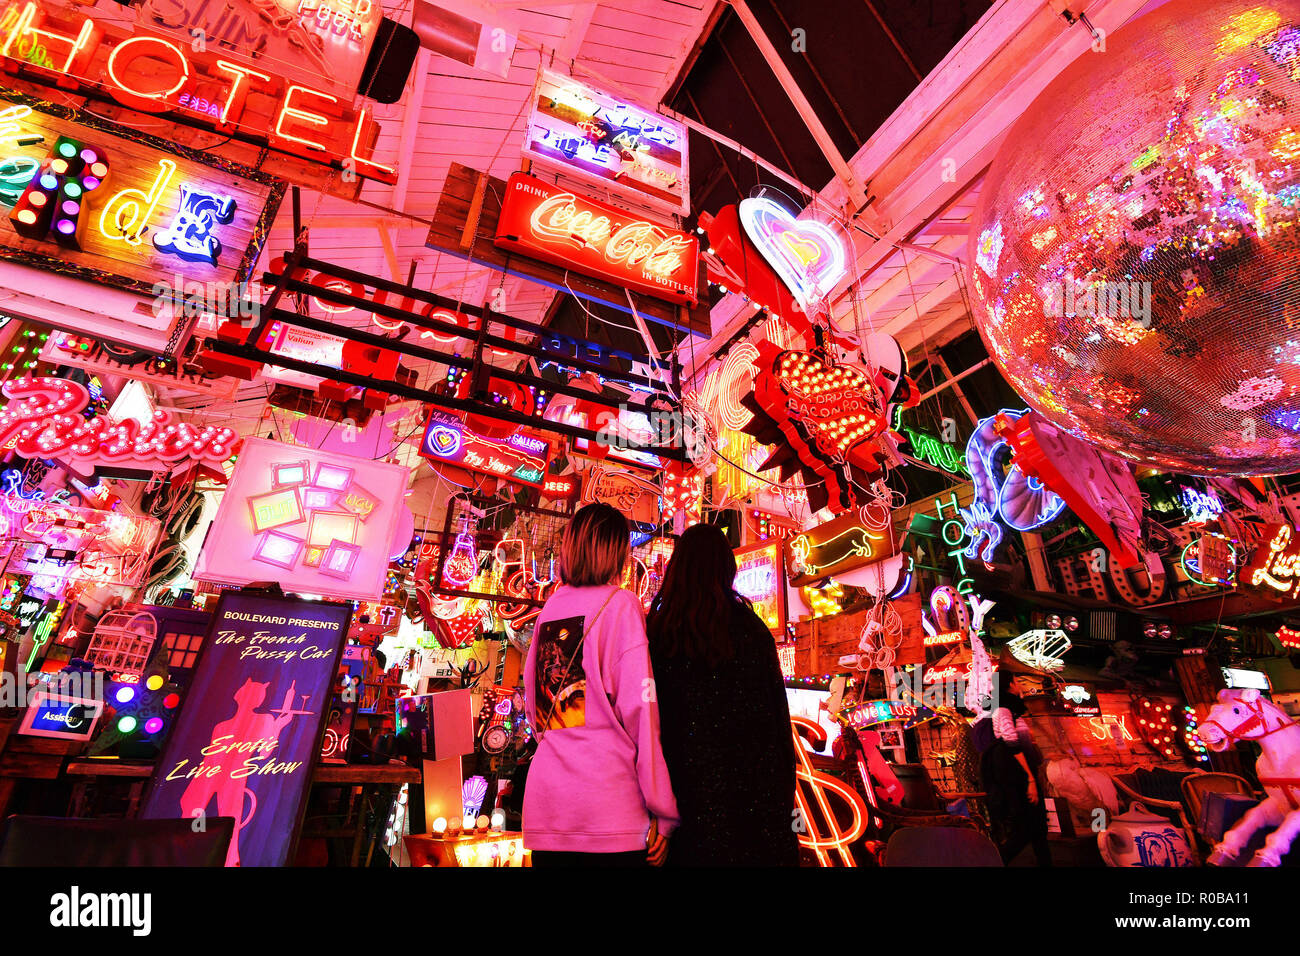 A view of God's Own Junkyard in Walthamstow, north east London, which showcases neon signs. - Stock Image